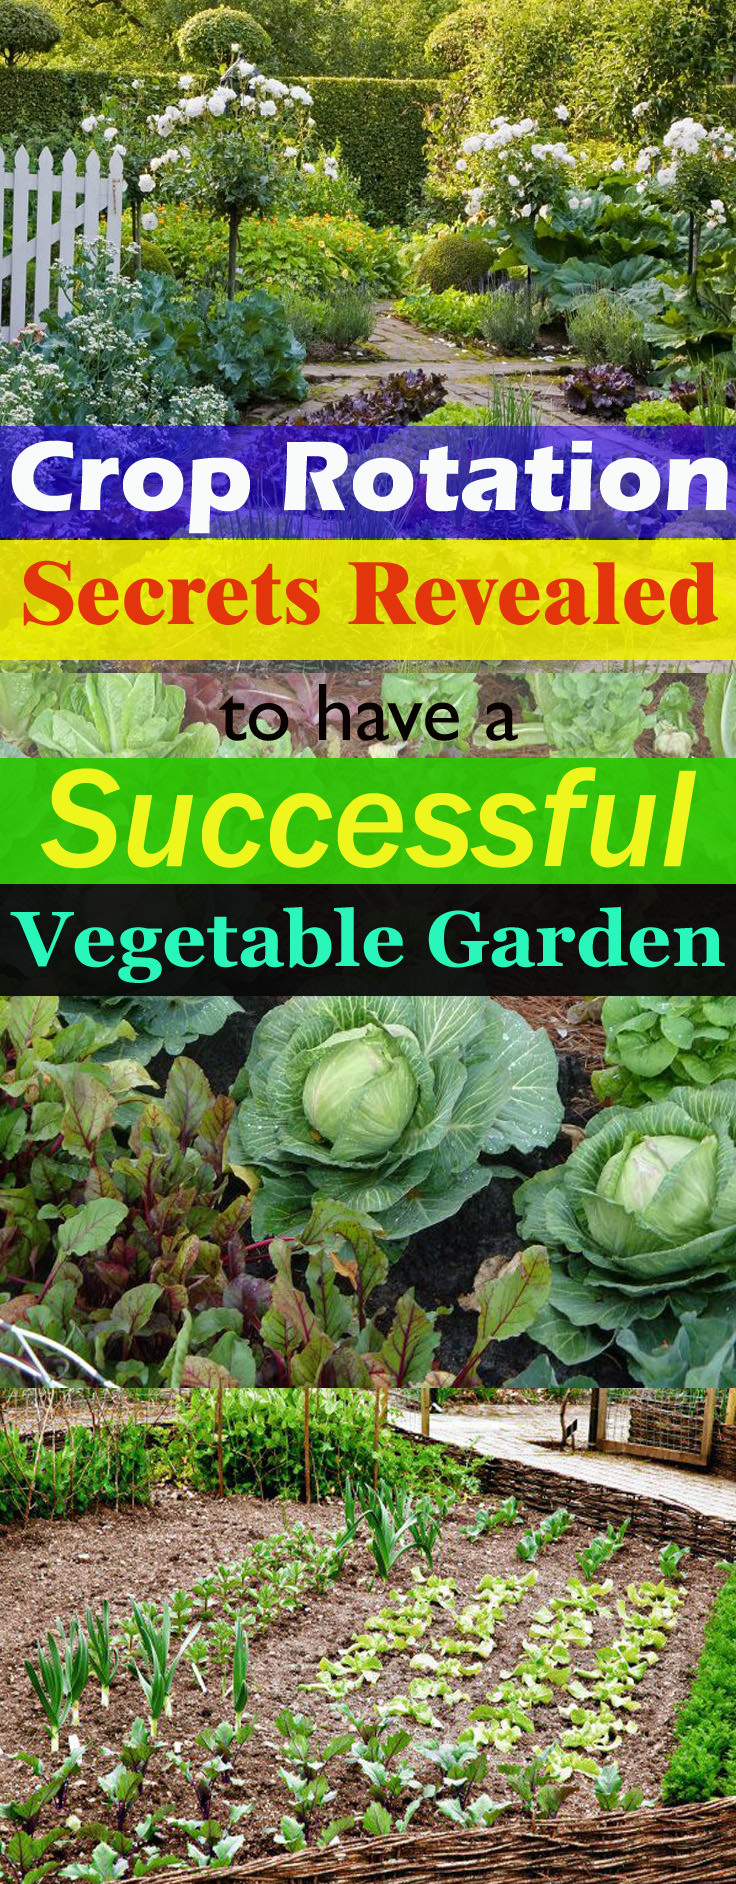 If you want to have a successful and most productive VEGETABLE garden, do crop rotation. Learn everything you need to know about it in this informative guide!